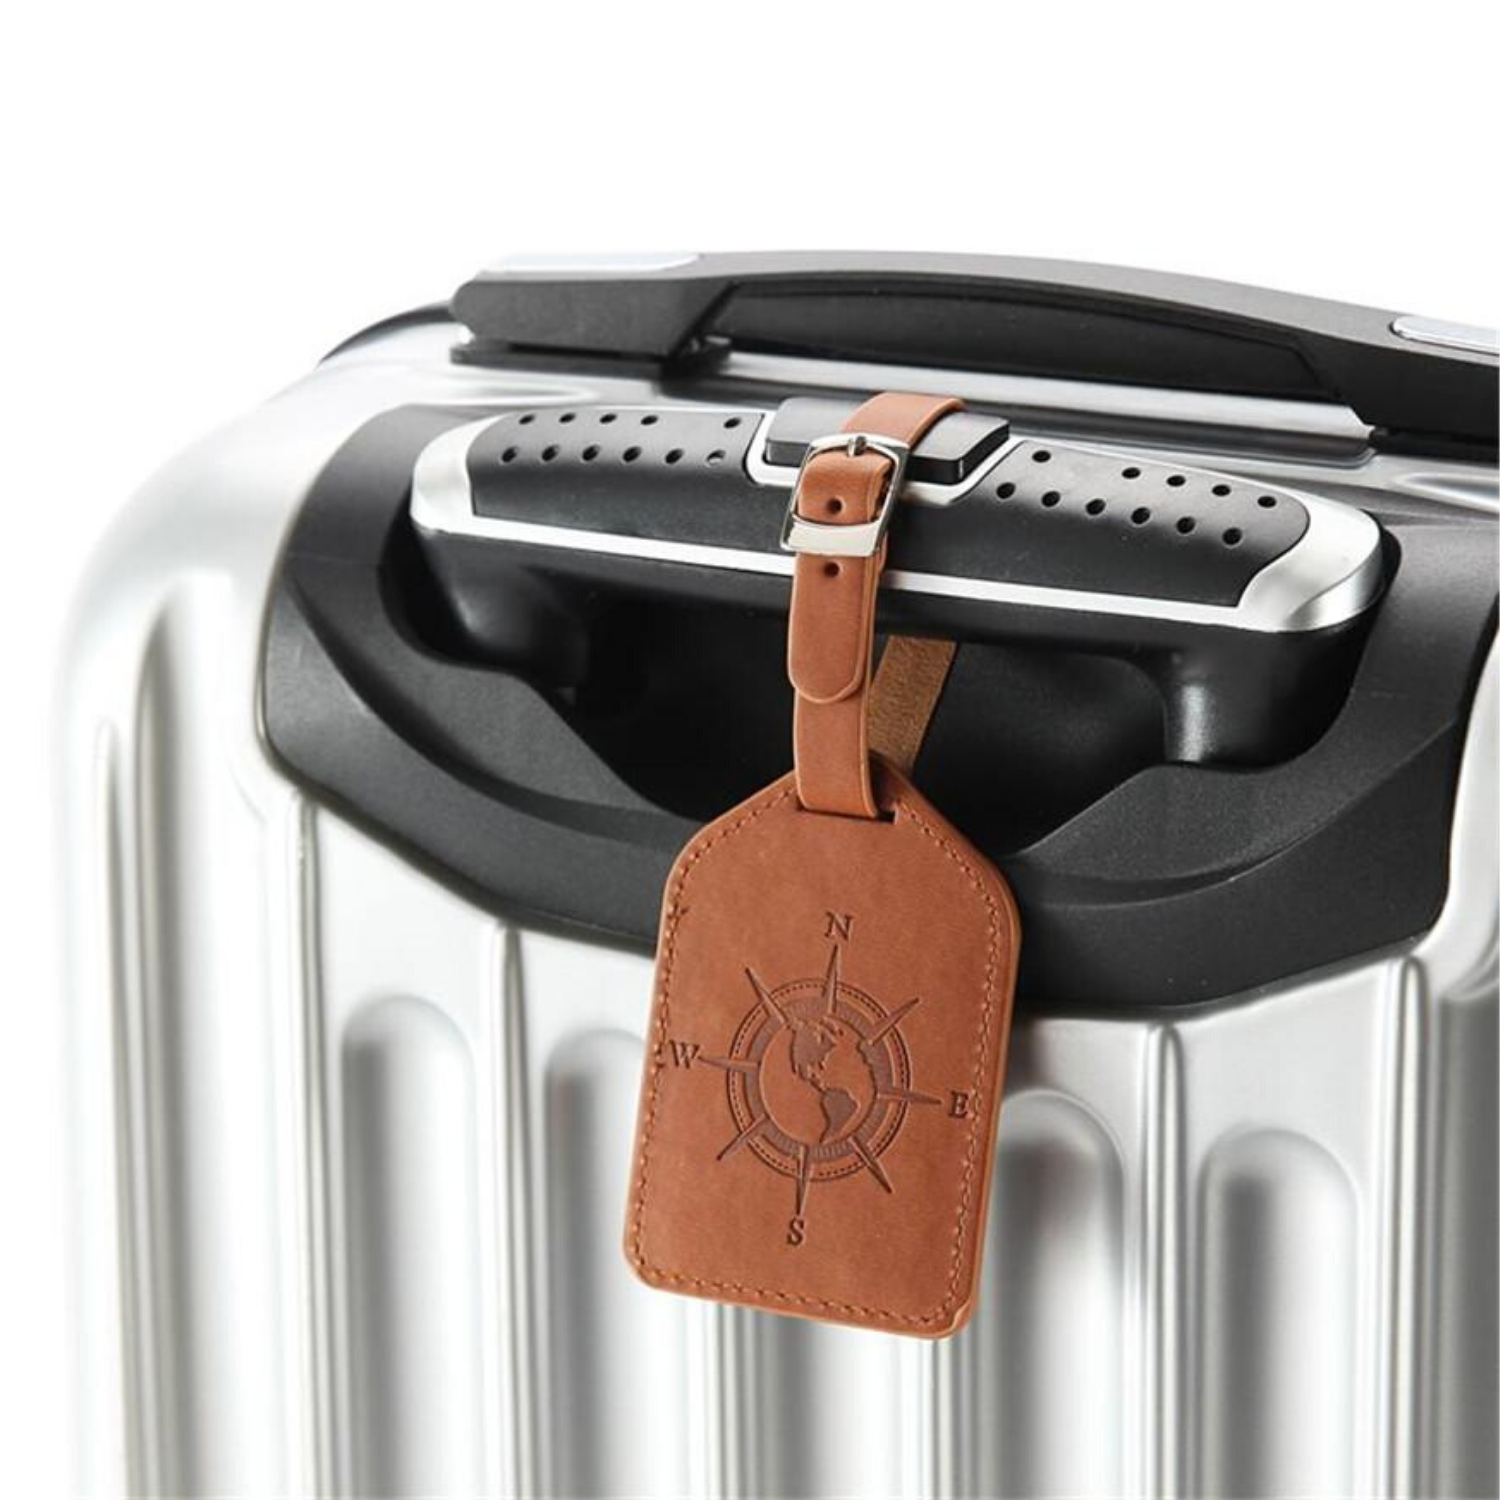 PU Leather Luggage Tag Label Suitcase Tags Tag Travel Accessory